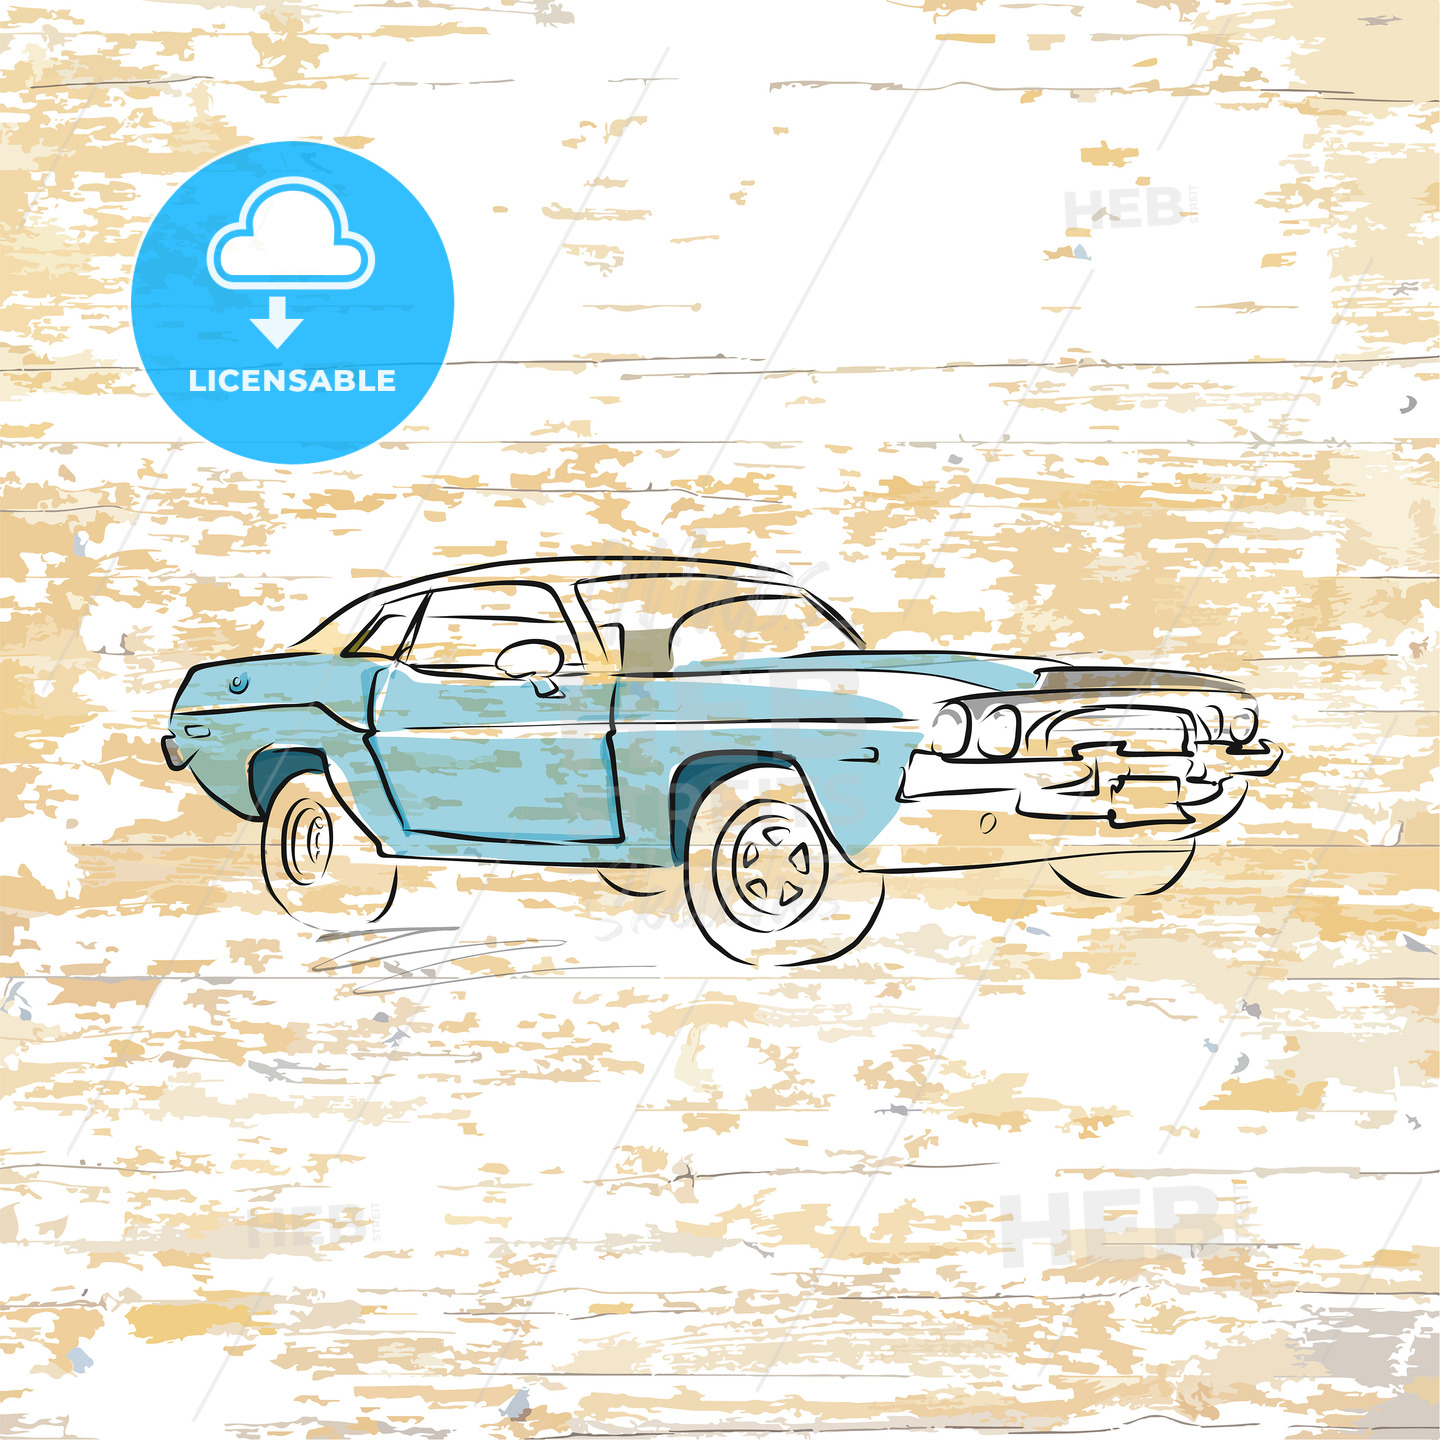 Vintage car drawing on wooden background